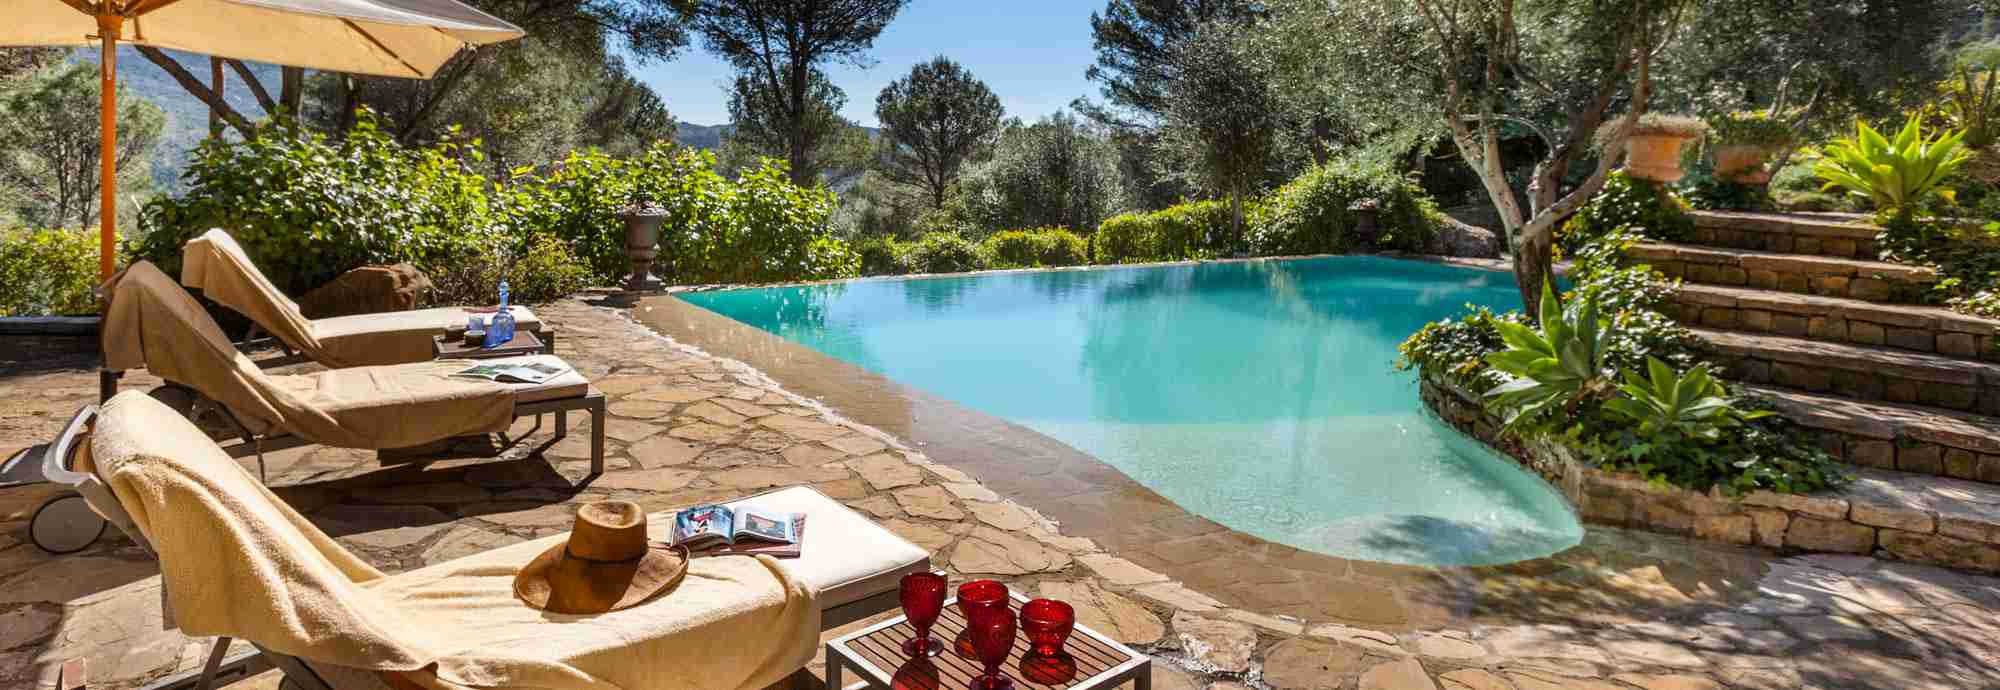 Characterful villa with exquisite pool nestled amidst stunning Mediterranean nature